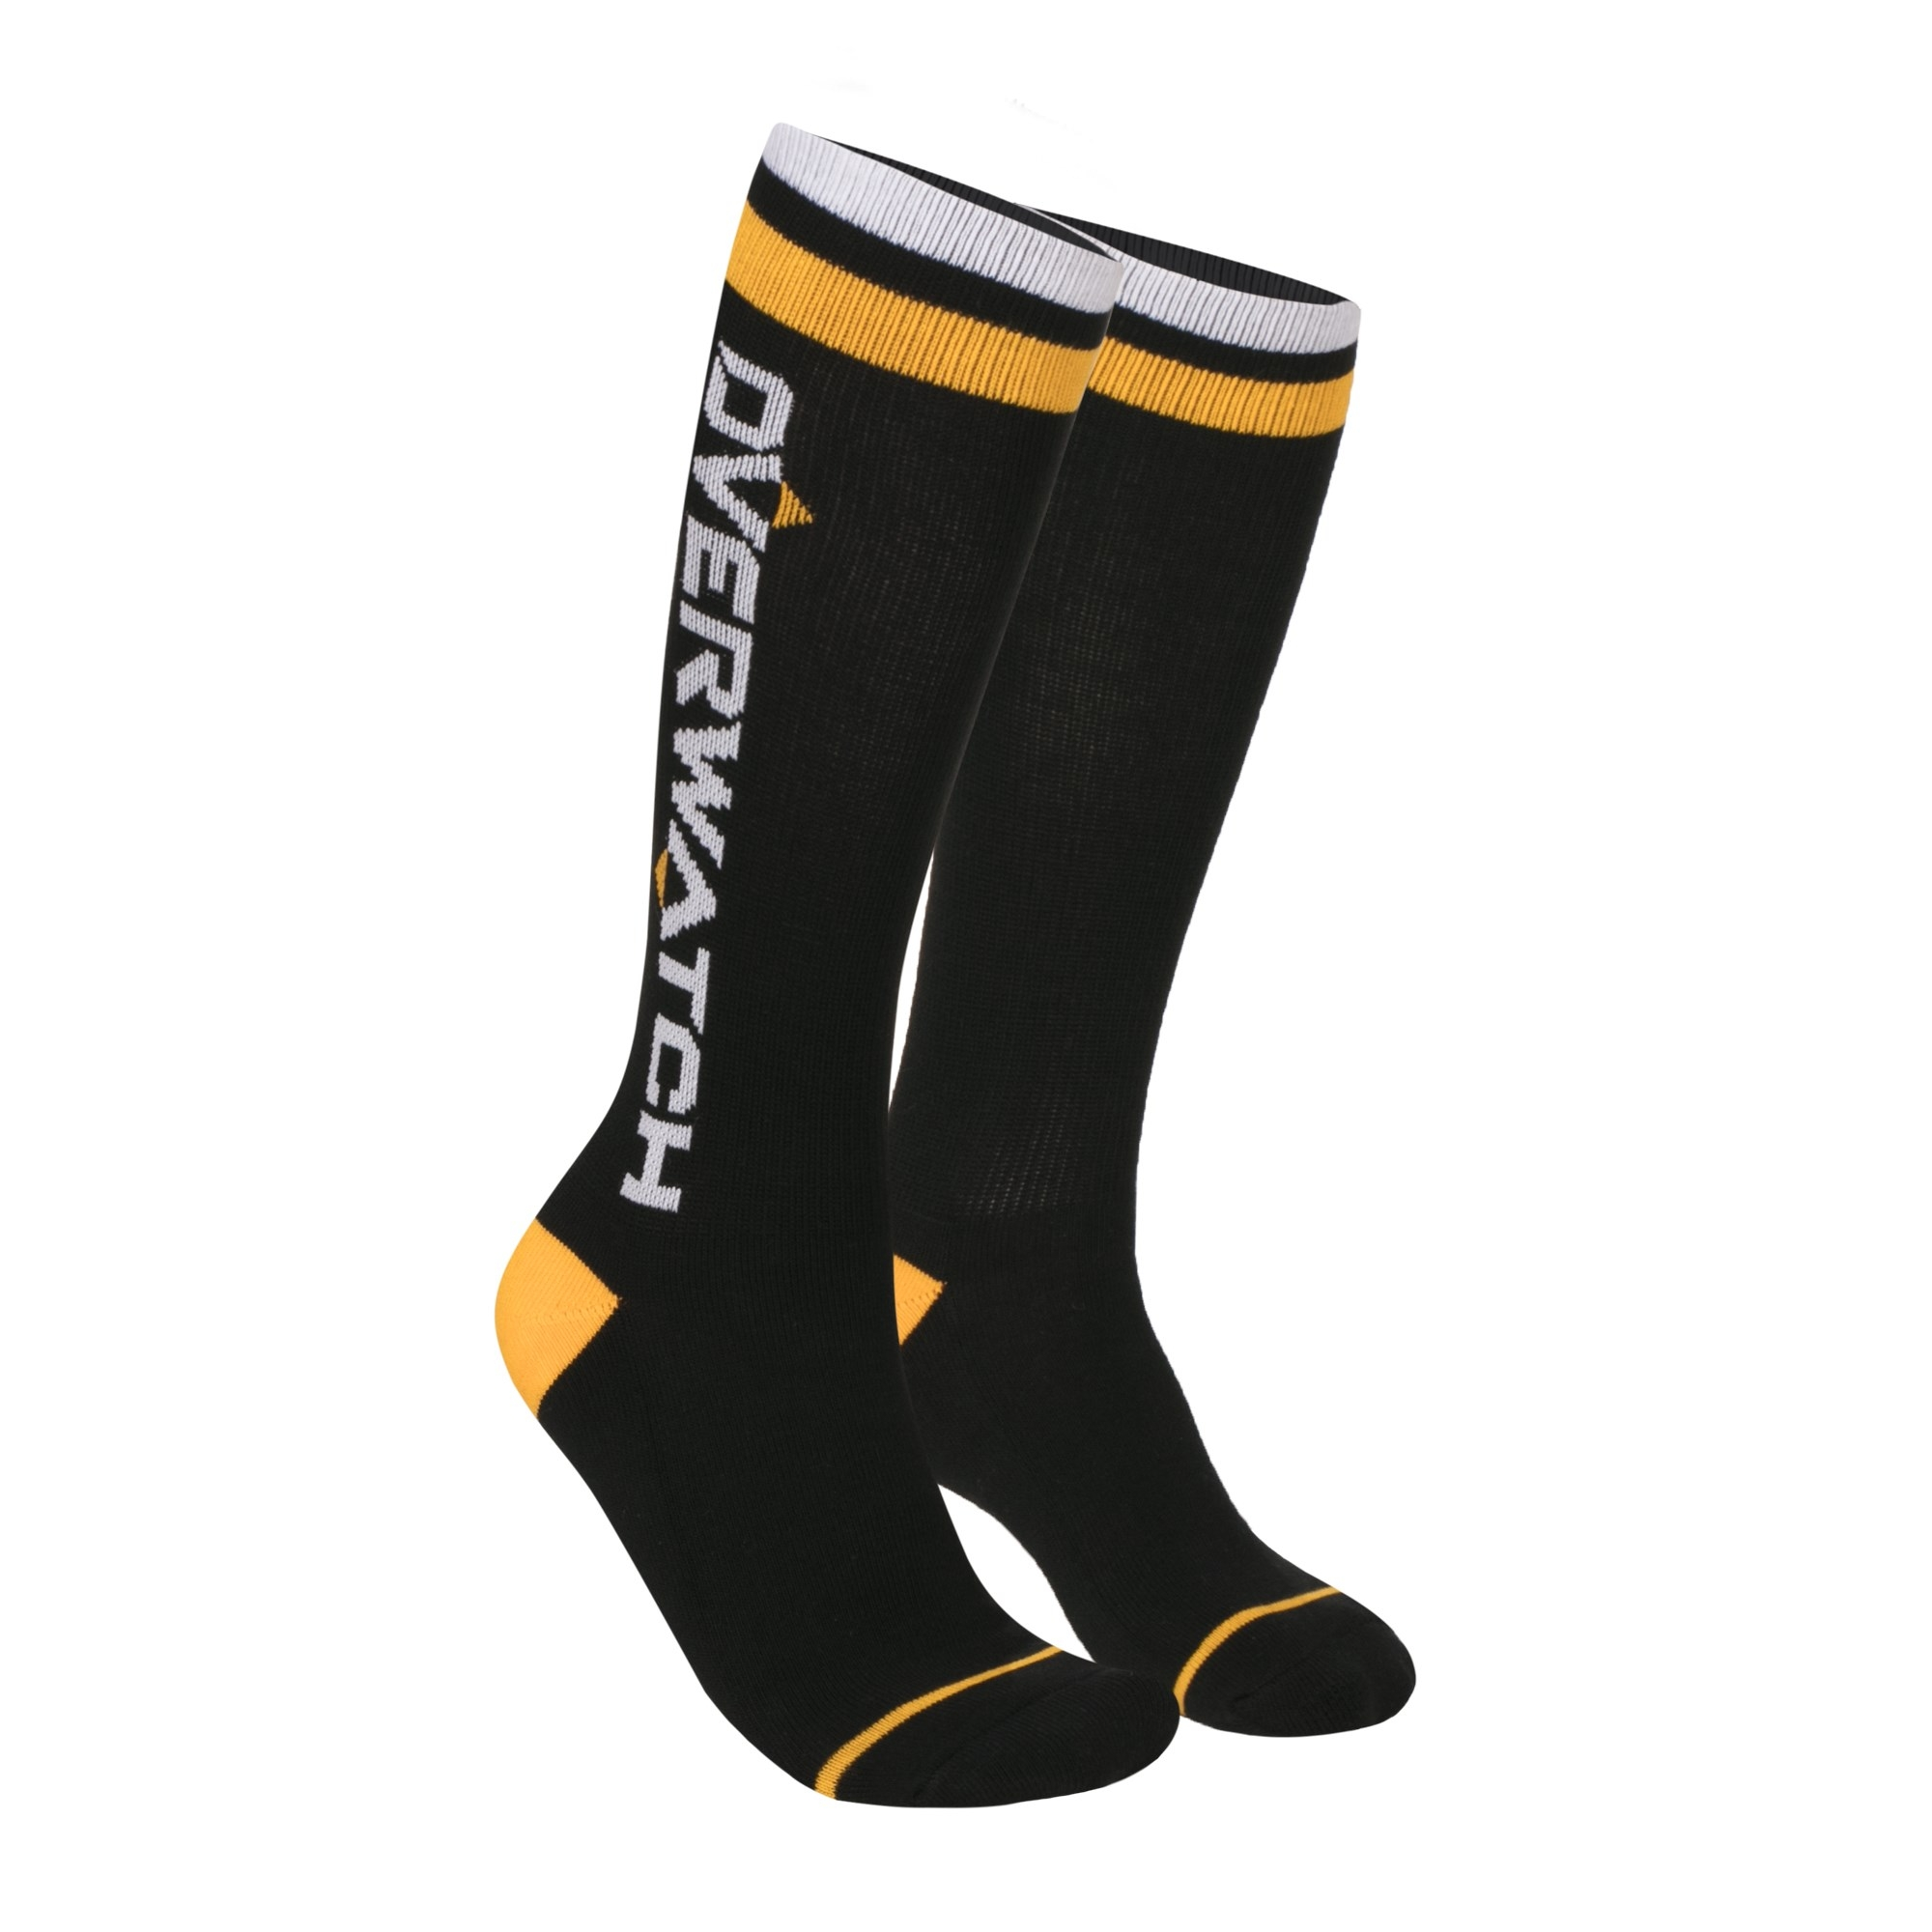 Overwatch Statement Socks